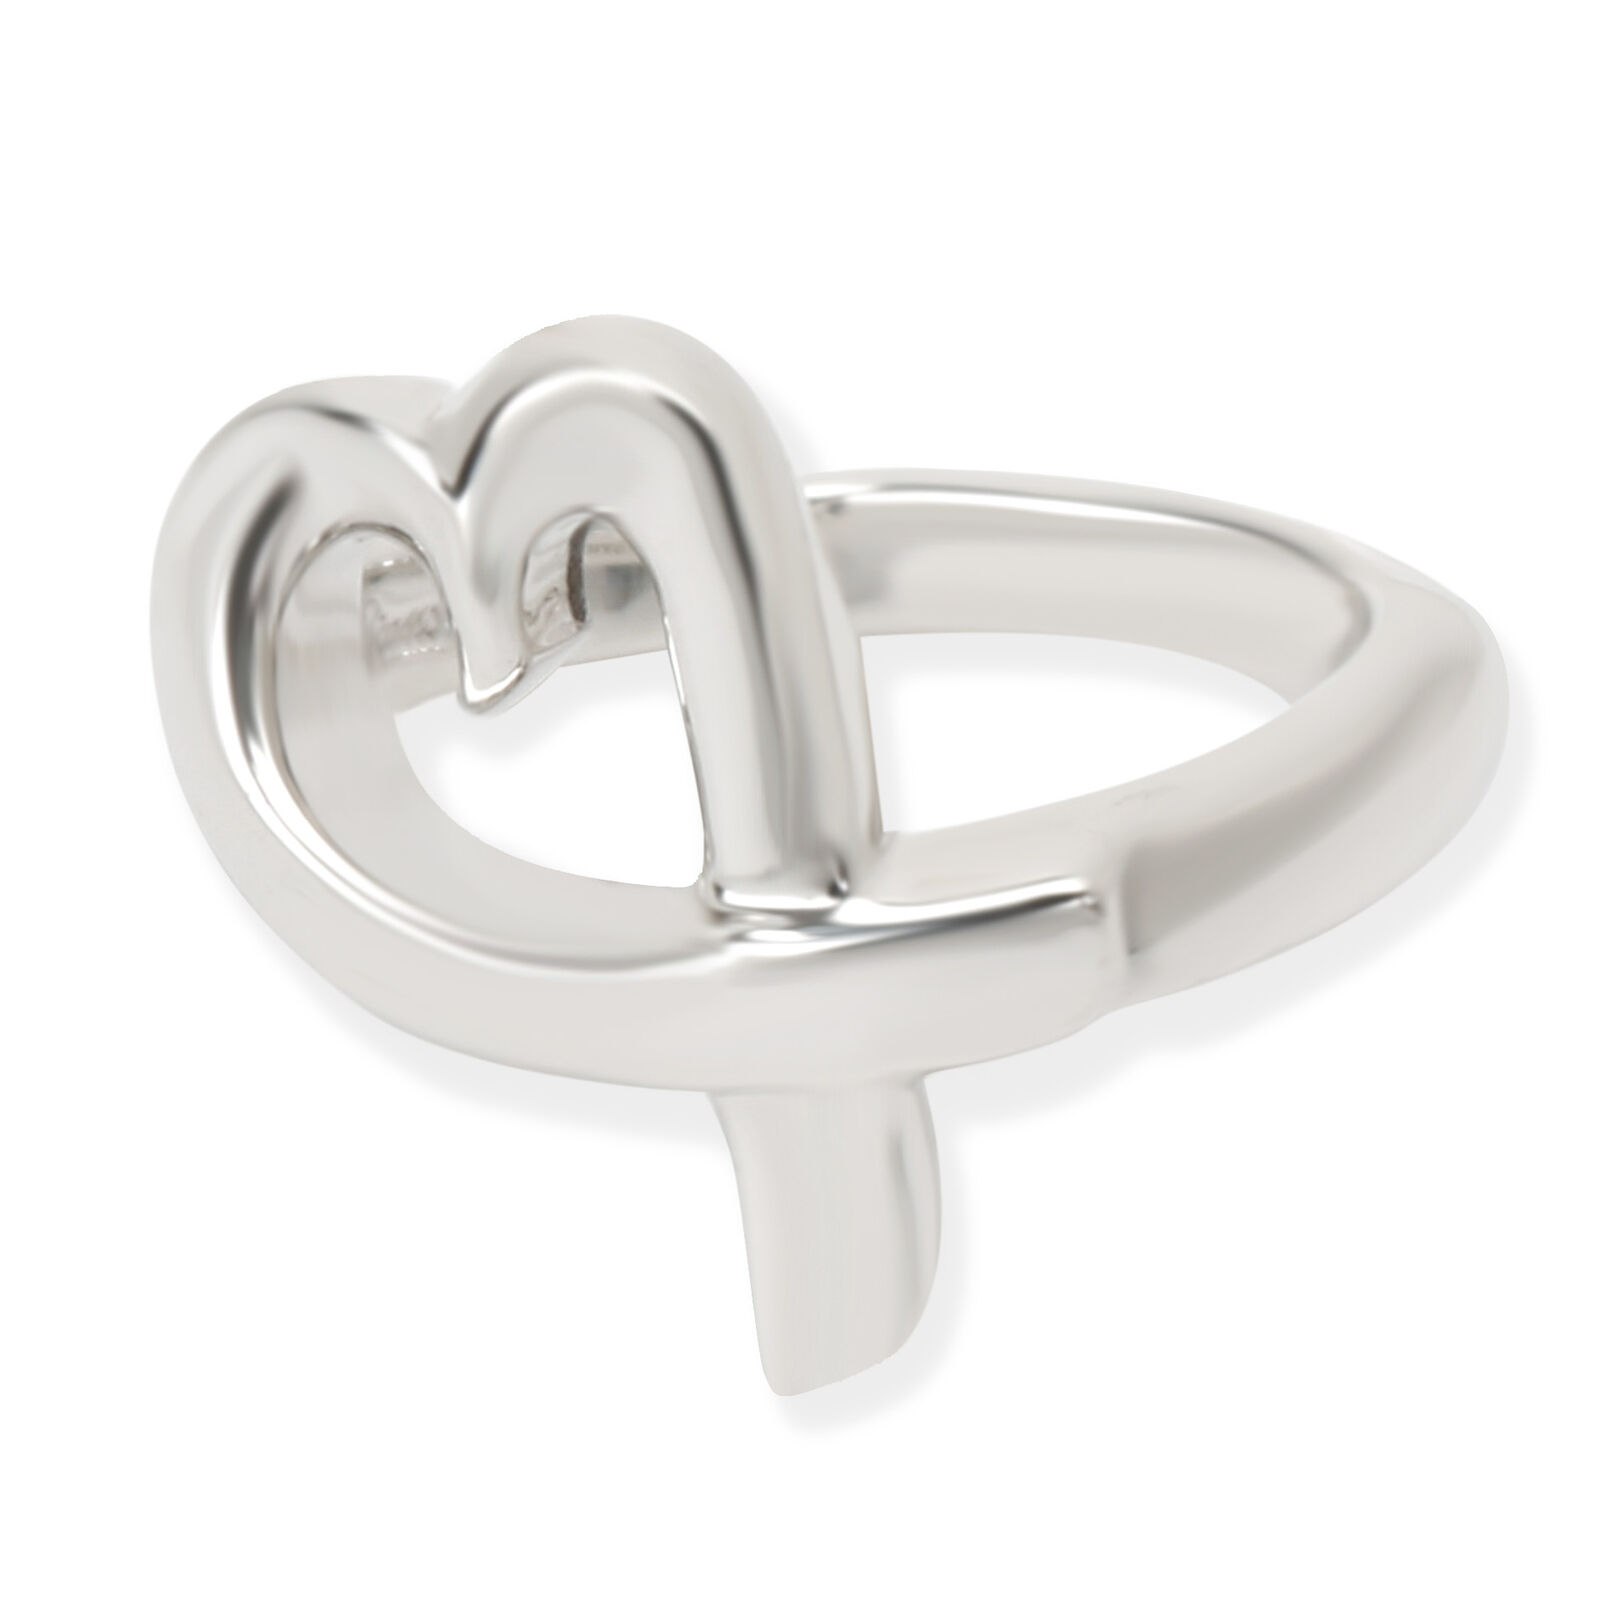 c91affbf25c63 Tiffany & Co. Paloma Picasso Loving Heart Ring in Sterling Silver